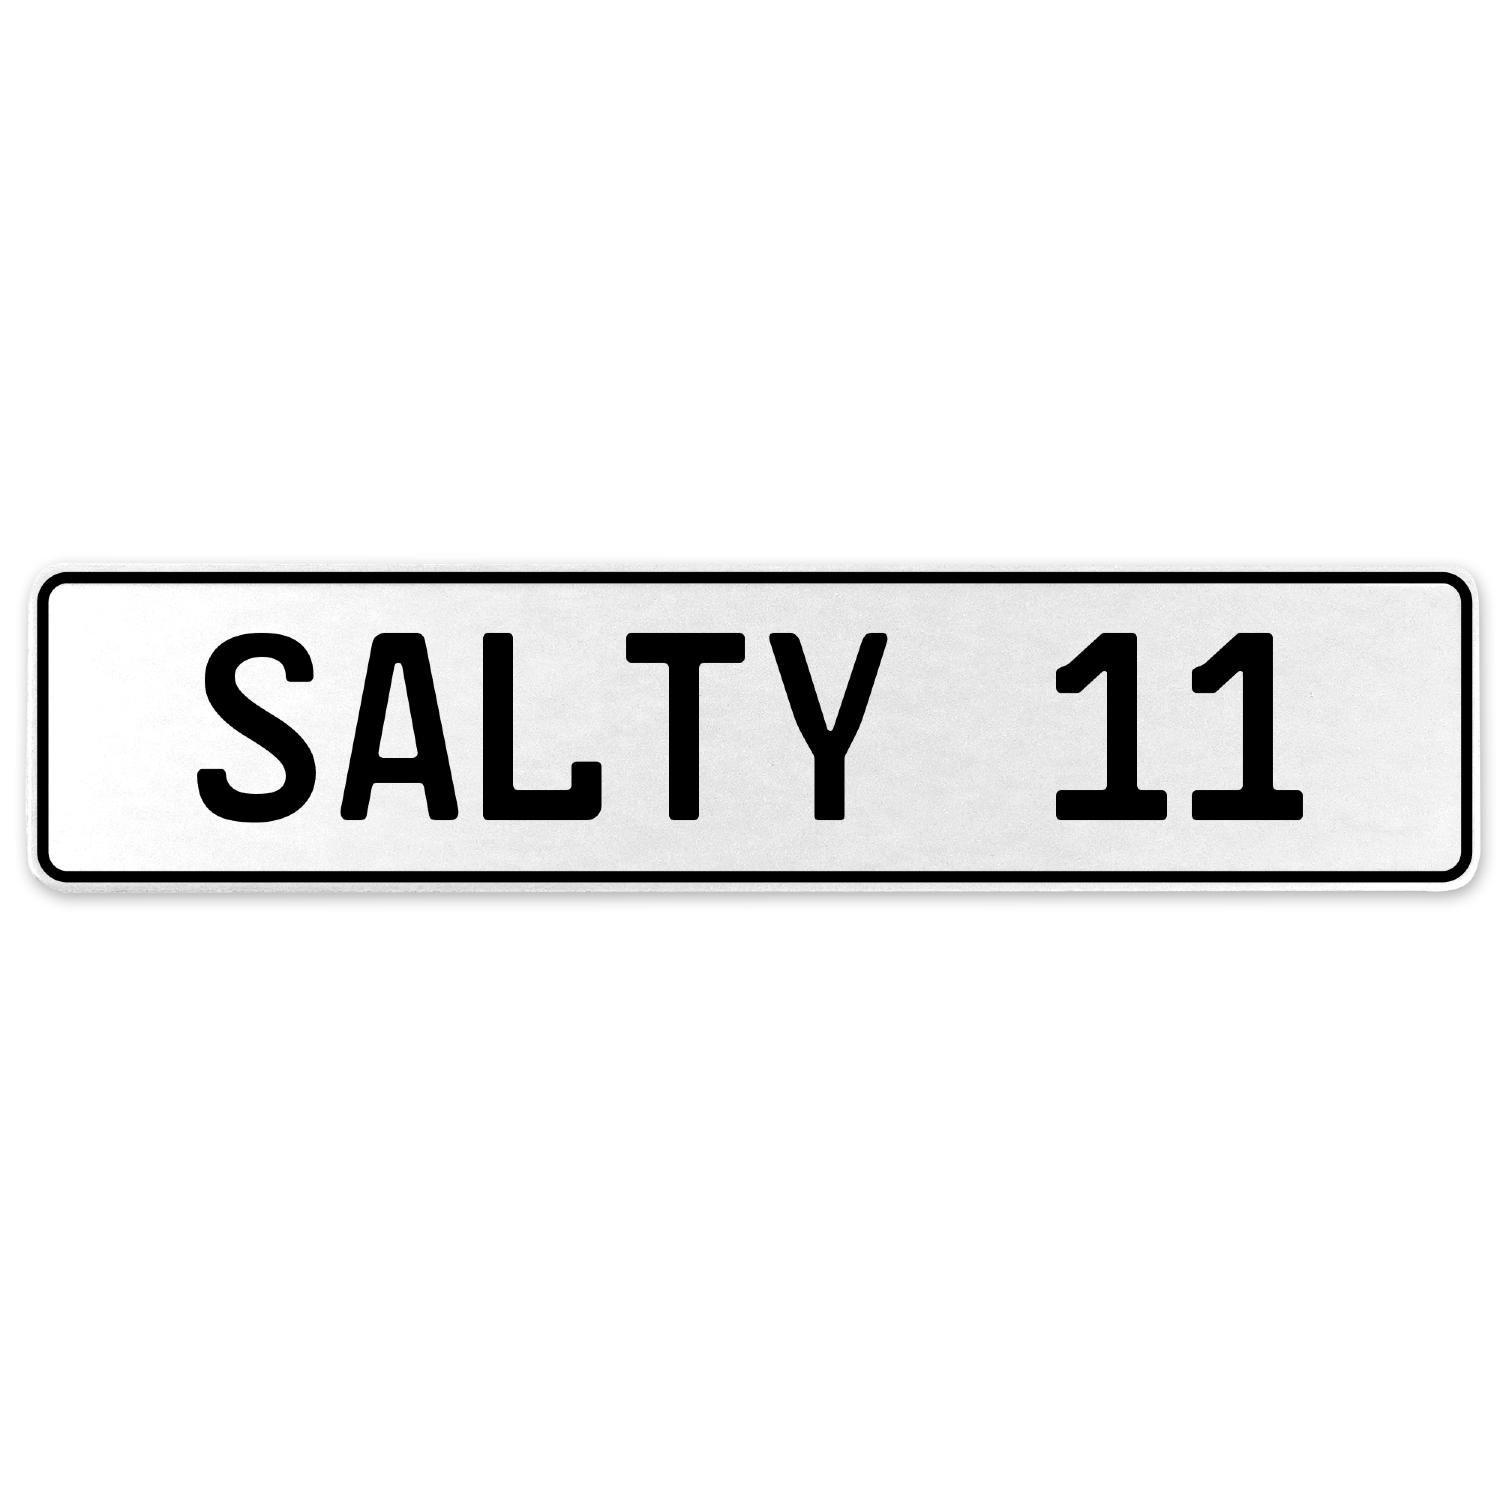 Vintage Parts 556687 Salty 11 White Stamped Aluminum European License Plate